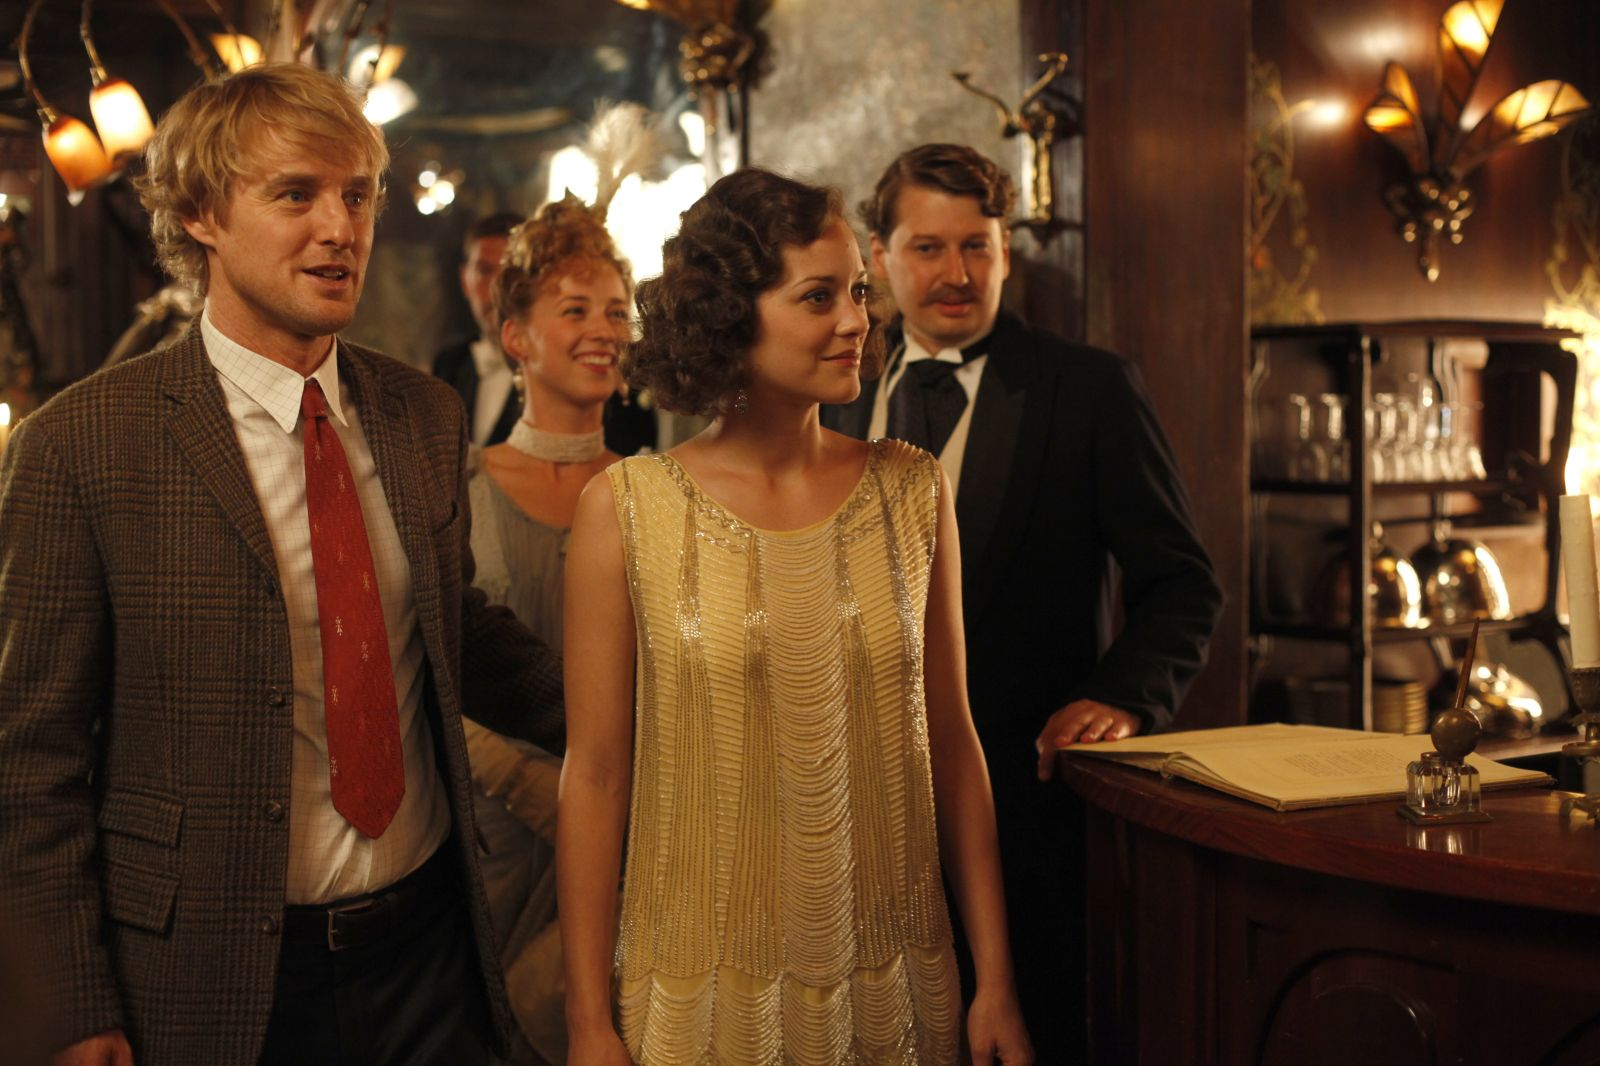 midnight in paris literary analysis This review contains spoilers oh, yes, it does, because i can't imagine a way to review midnight in paris without discussing the delightful fantasy at the heart of woody allen's new comedy the trailers don't give it away, but now the reviews from cannes have appeared, and the cat is pretty much out of the bag.